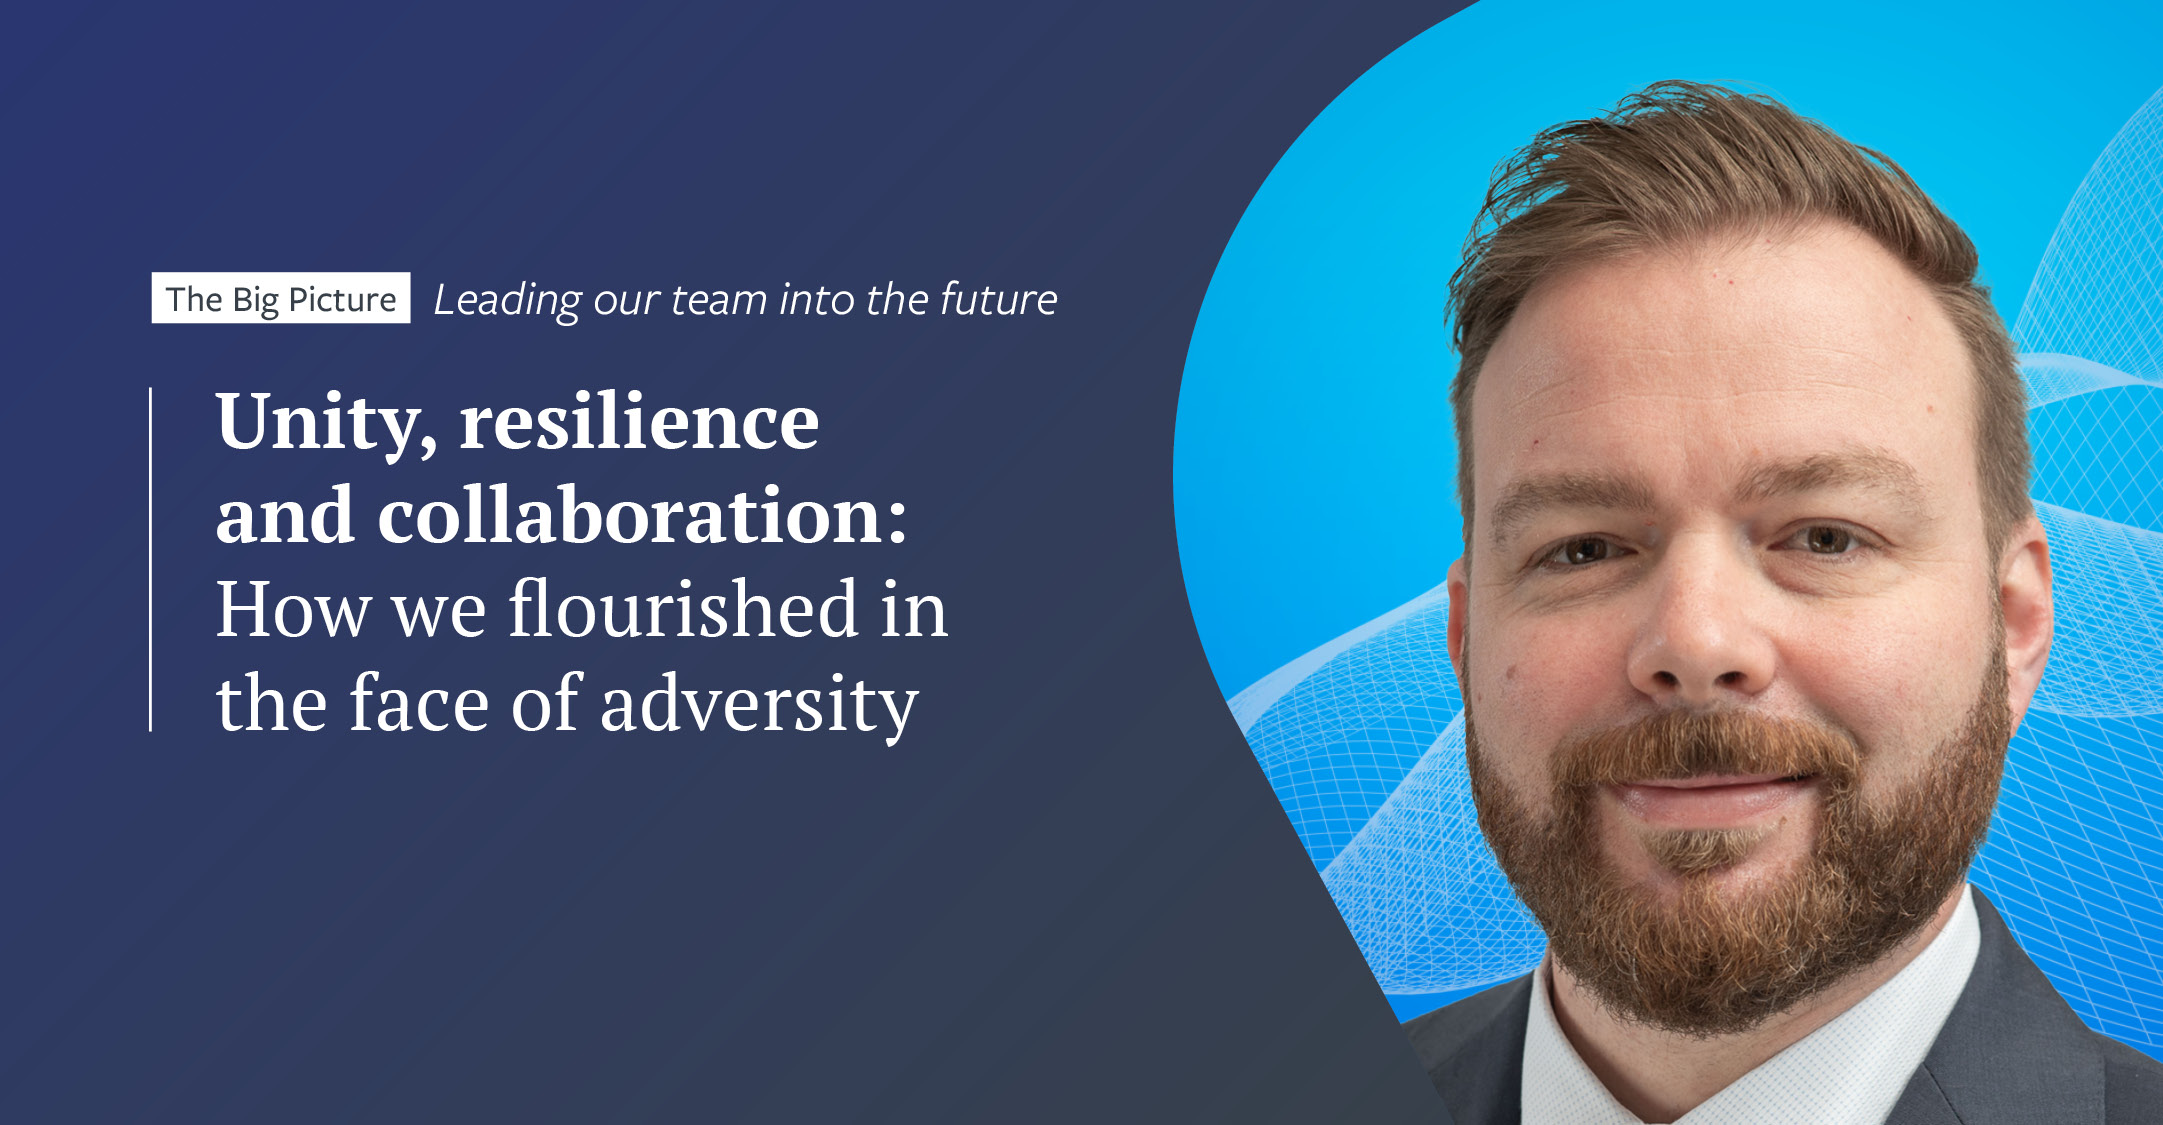 Unity, resilience and collaboration: how we flourished in the face of adversity